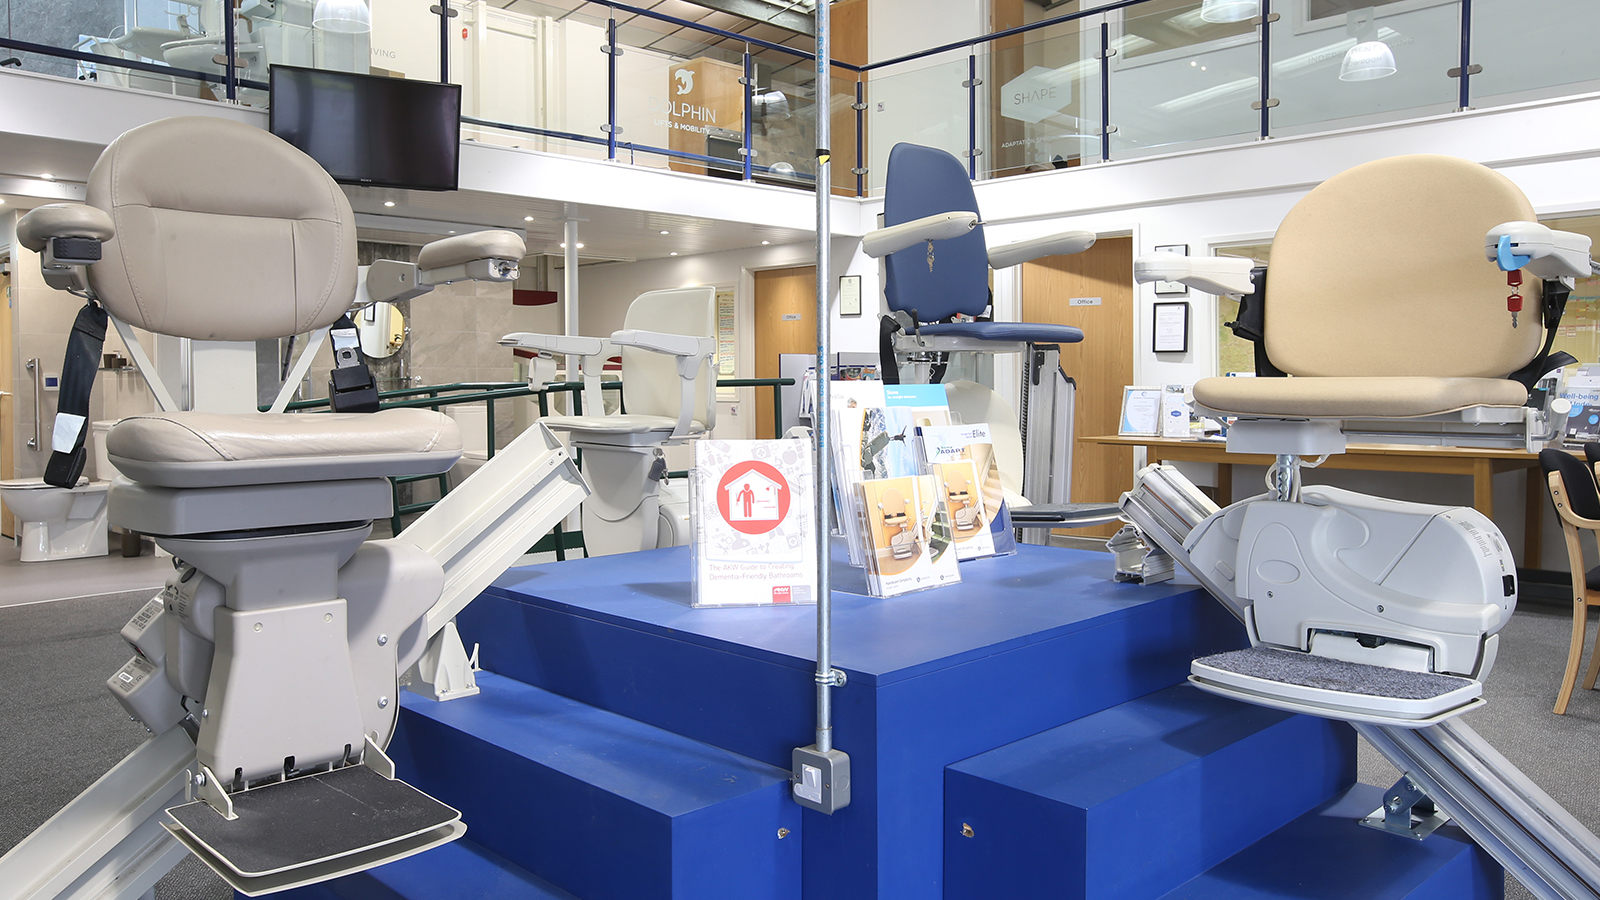 Dolphin Lifts and Mobility | Northeast Stairlift and